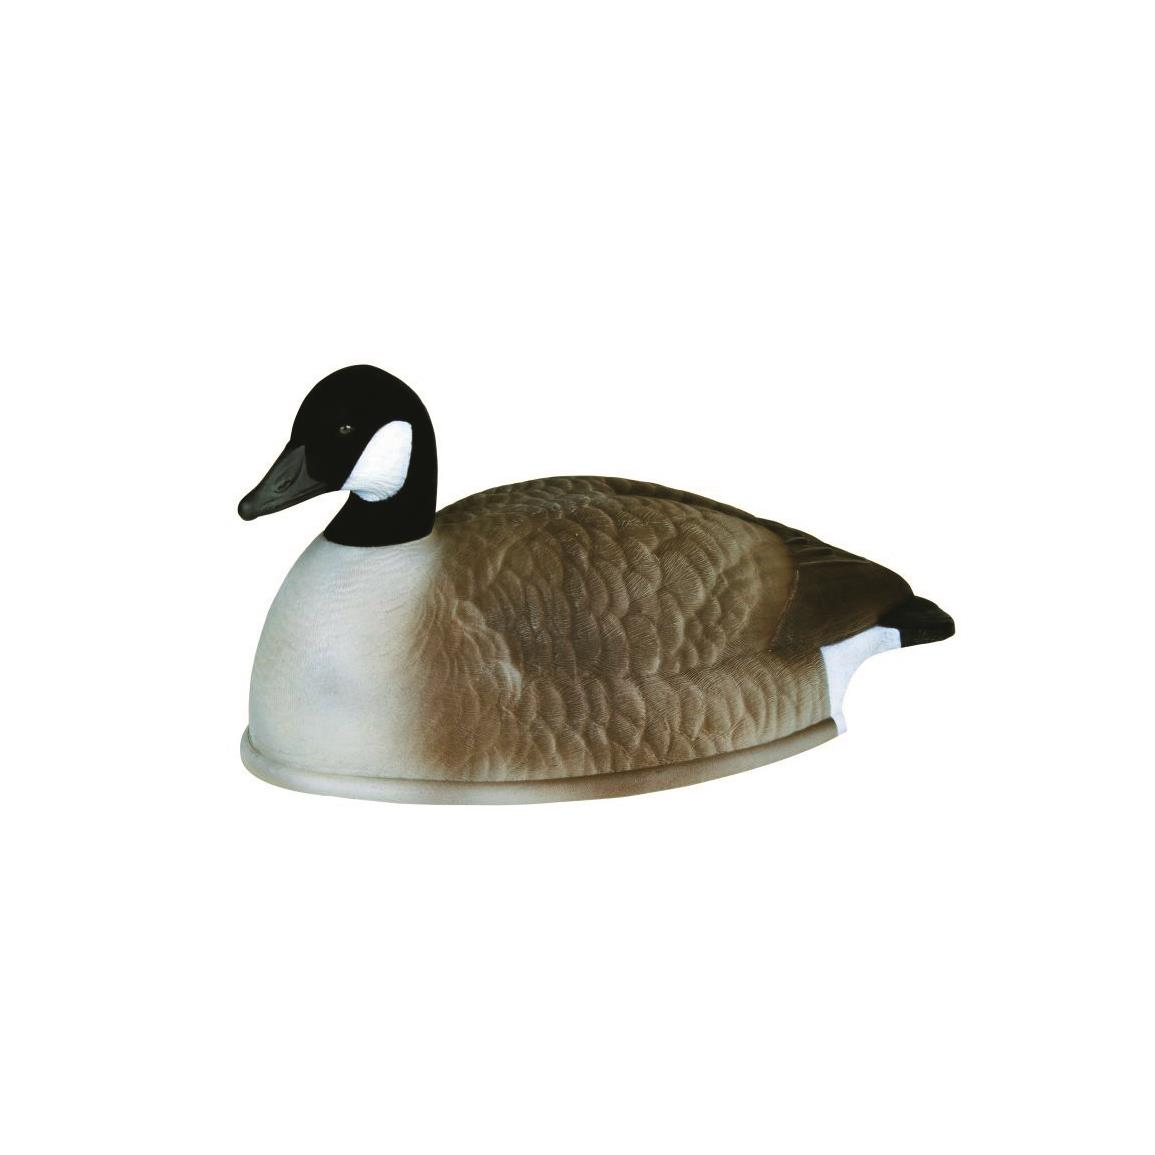 Flambeau Stormfront Flocked Head Canada Goose Shell Decoys, 12 Pack • Resting Decoys